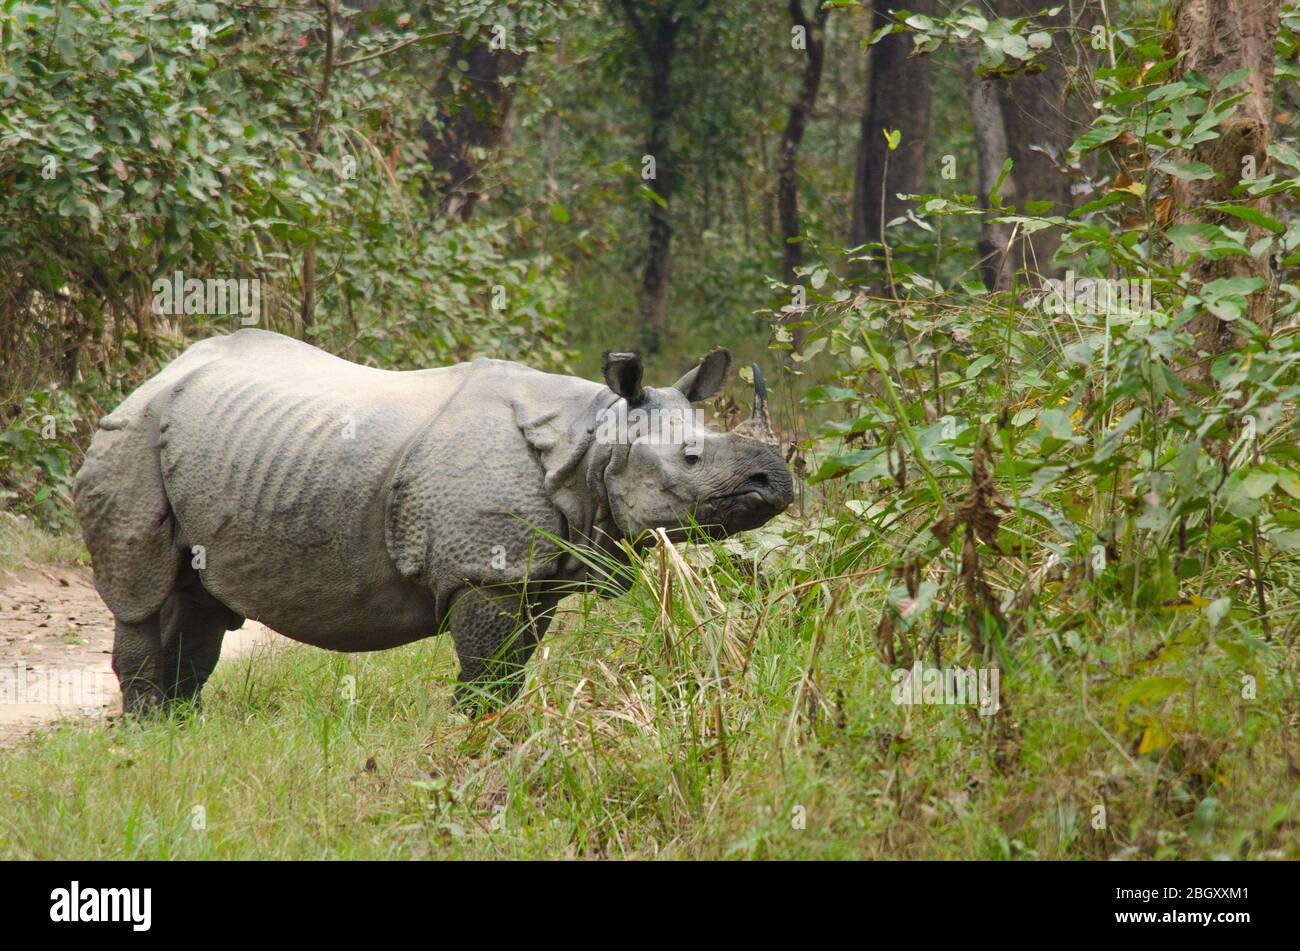 Rhinoceros Plural Rhinoceroses Rhinoceros Or Rhinoceri Any Of Five Or Six Species Of Giant Horn Bearing Herbivores That Include Some Of The Lar Stock Photo 354633553 Alamy